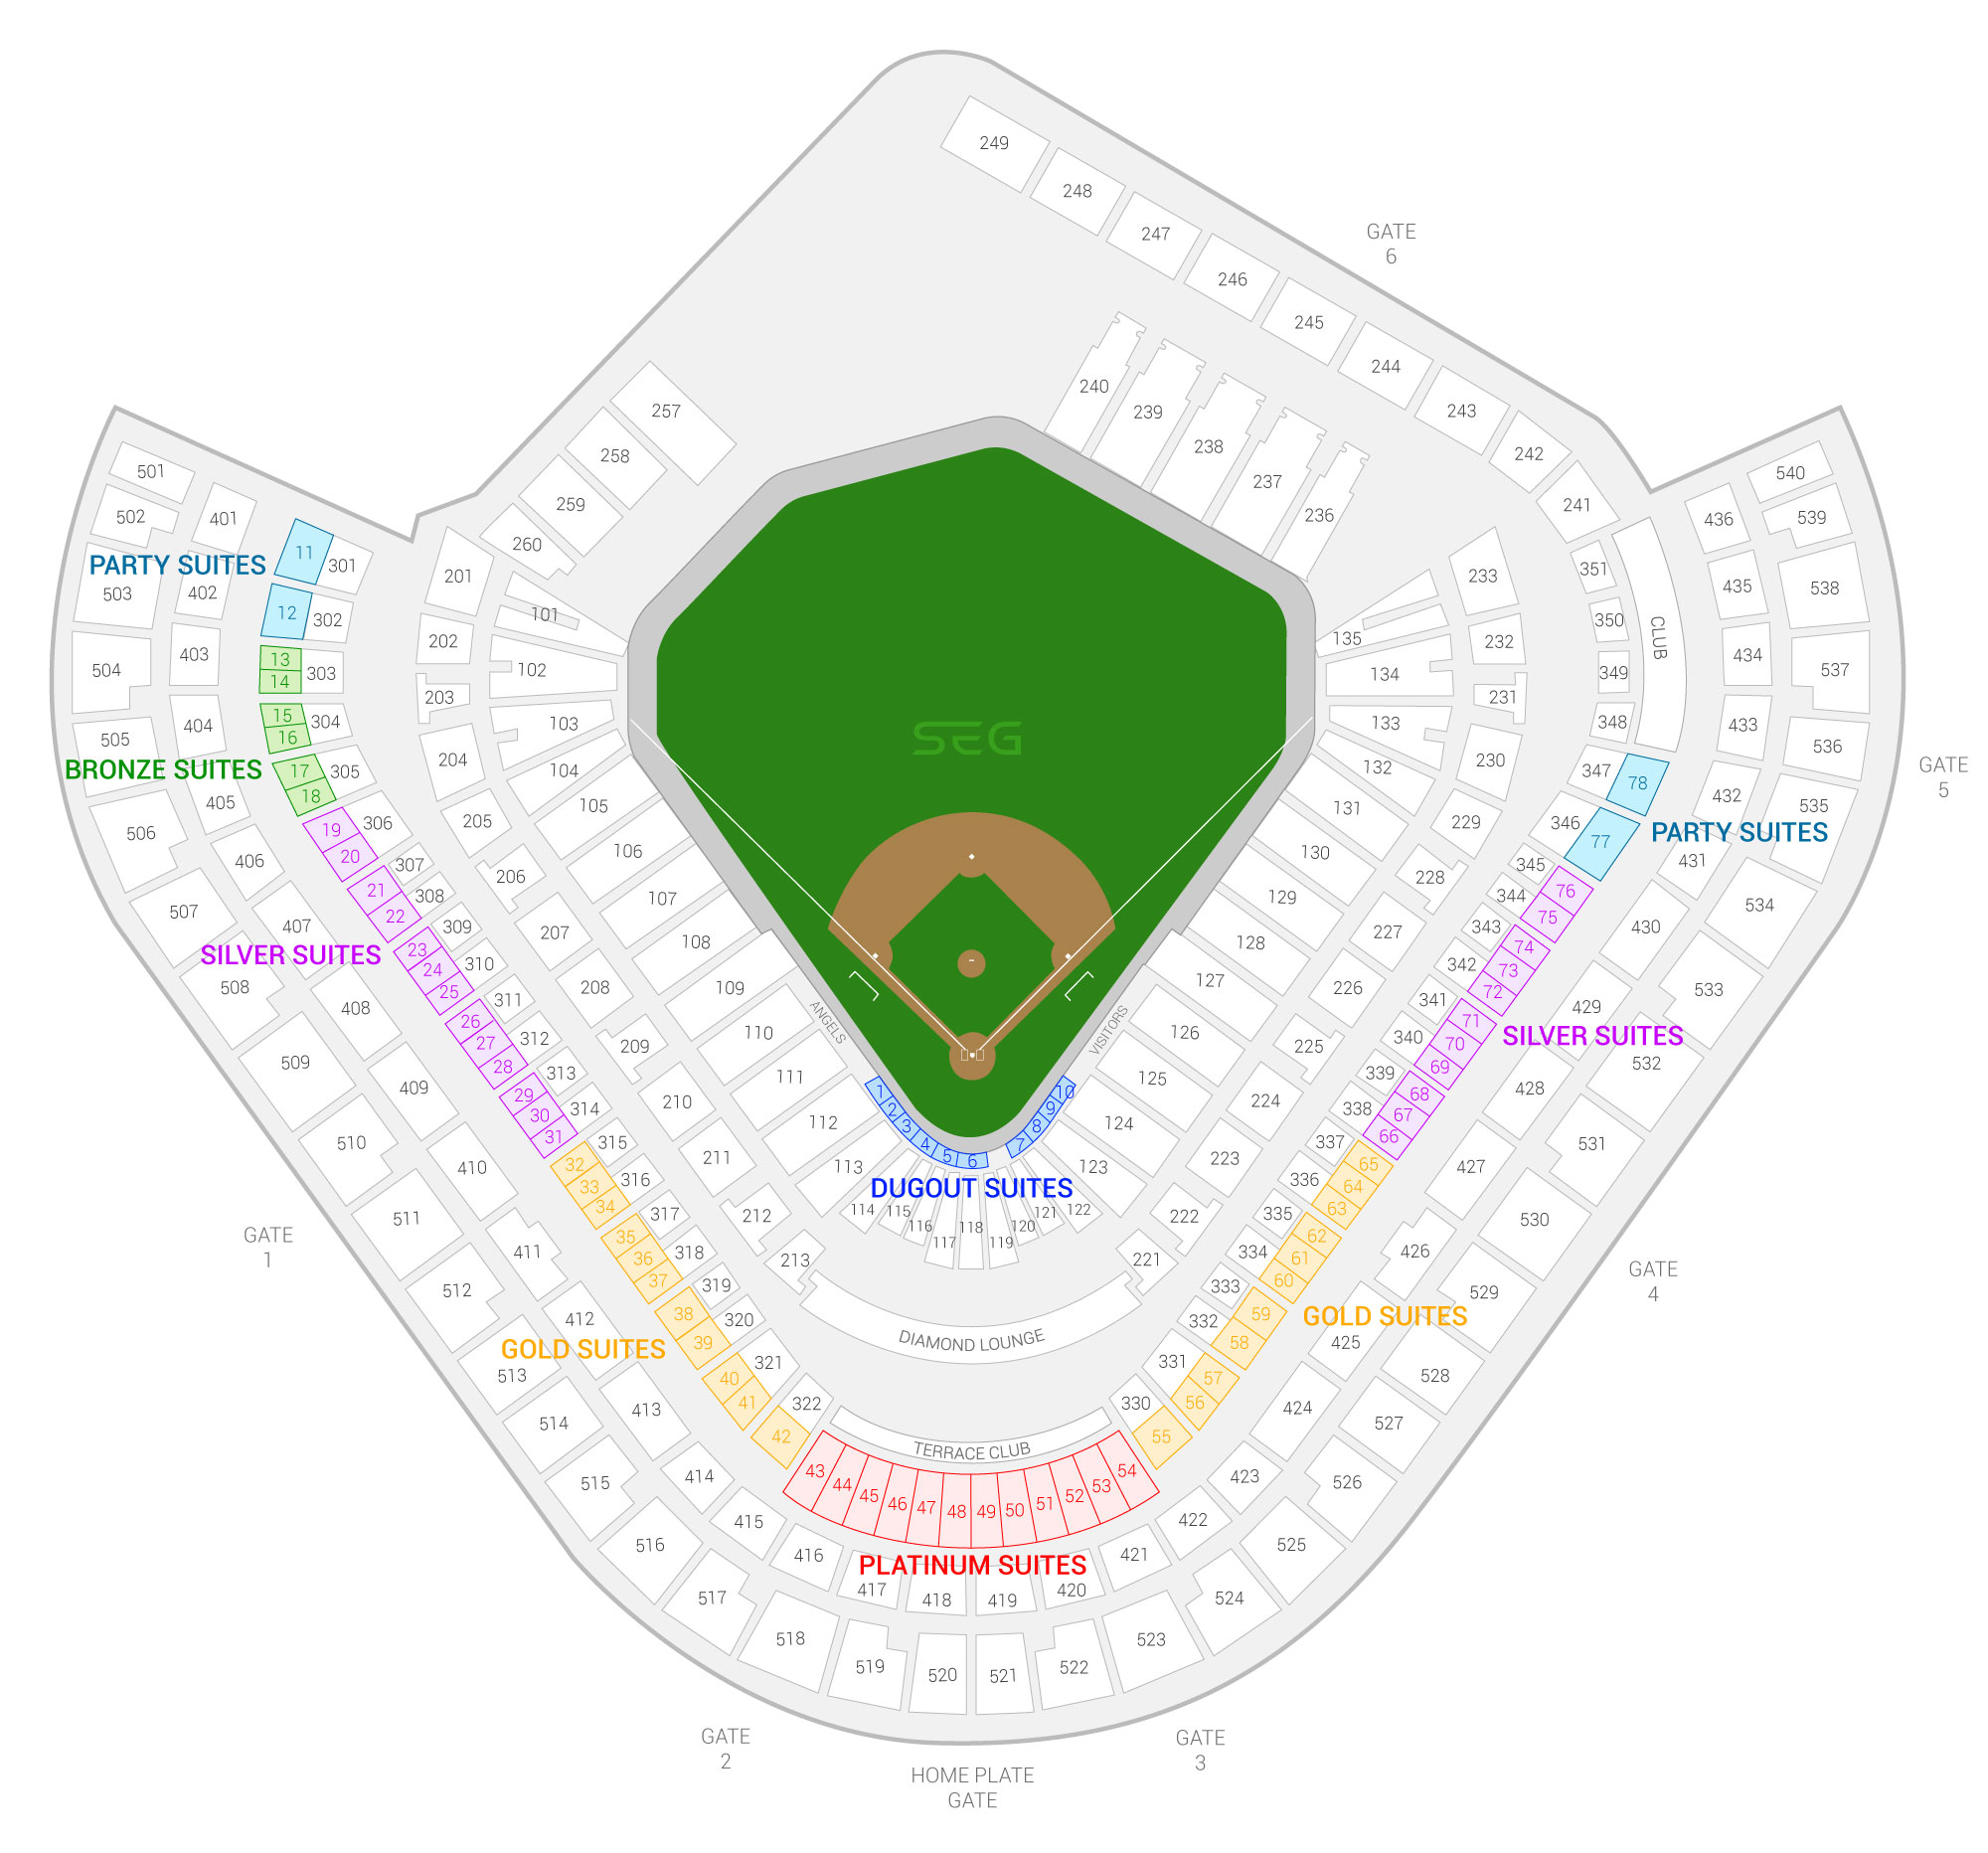 Angel Stadium of Anaheim / Los Angeles Angels Suite Map and Seating Chart